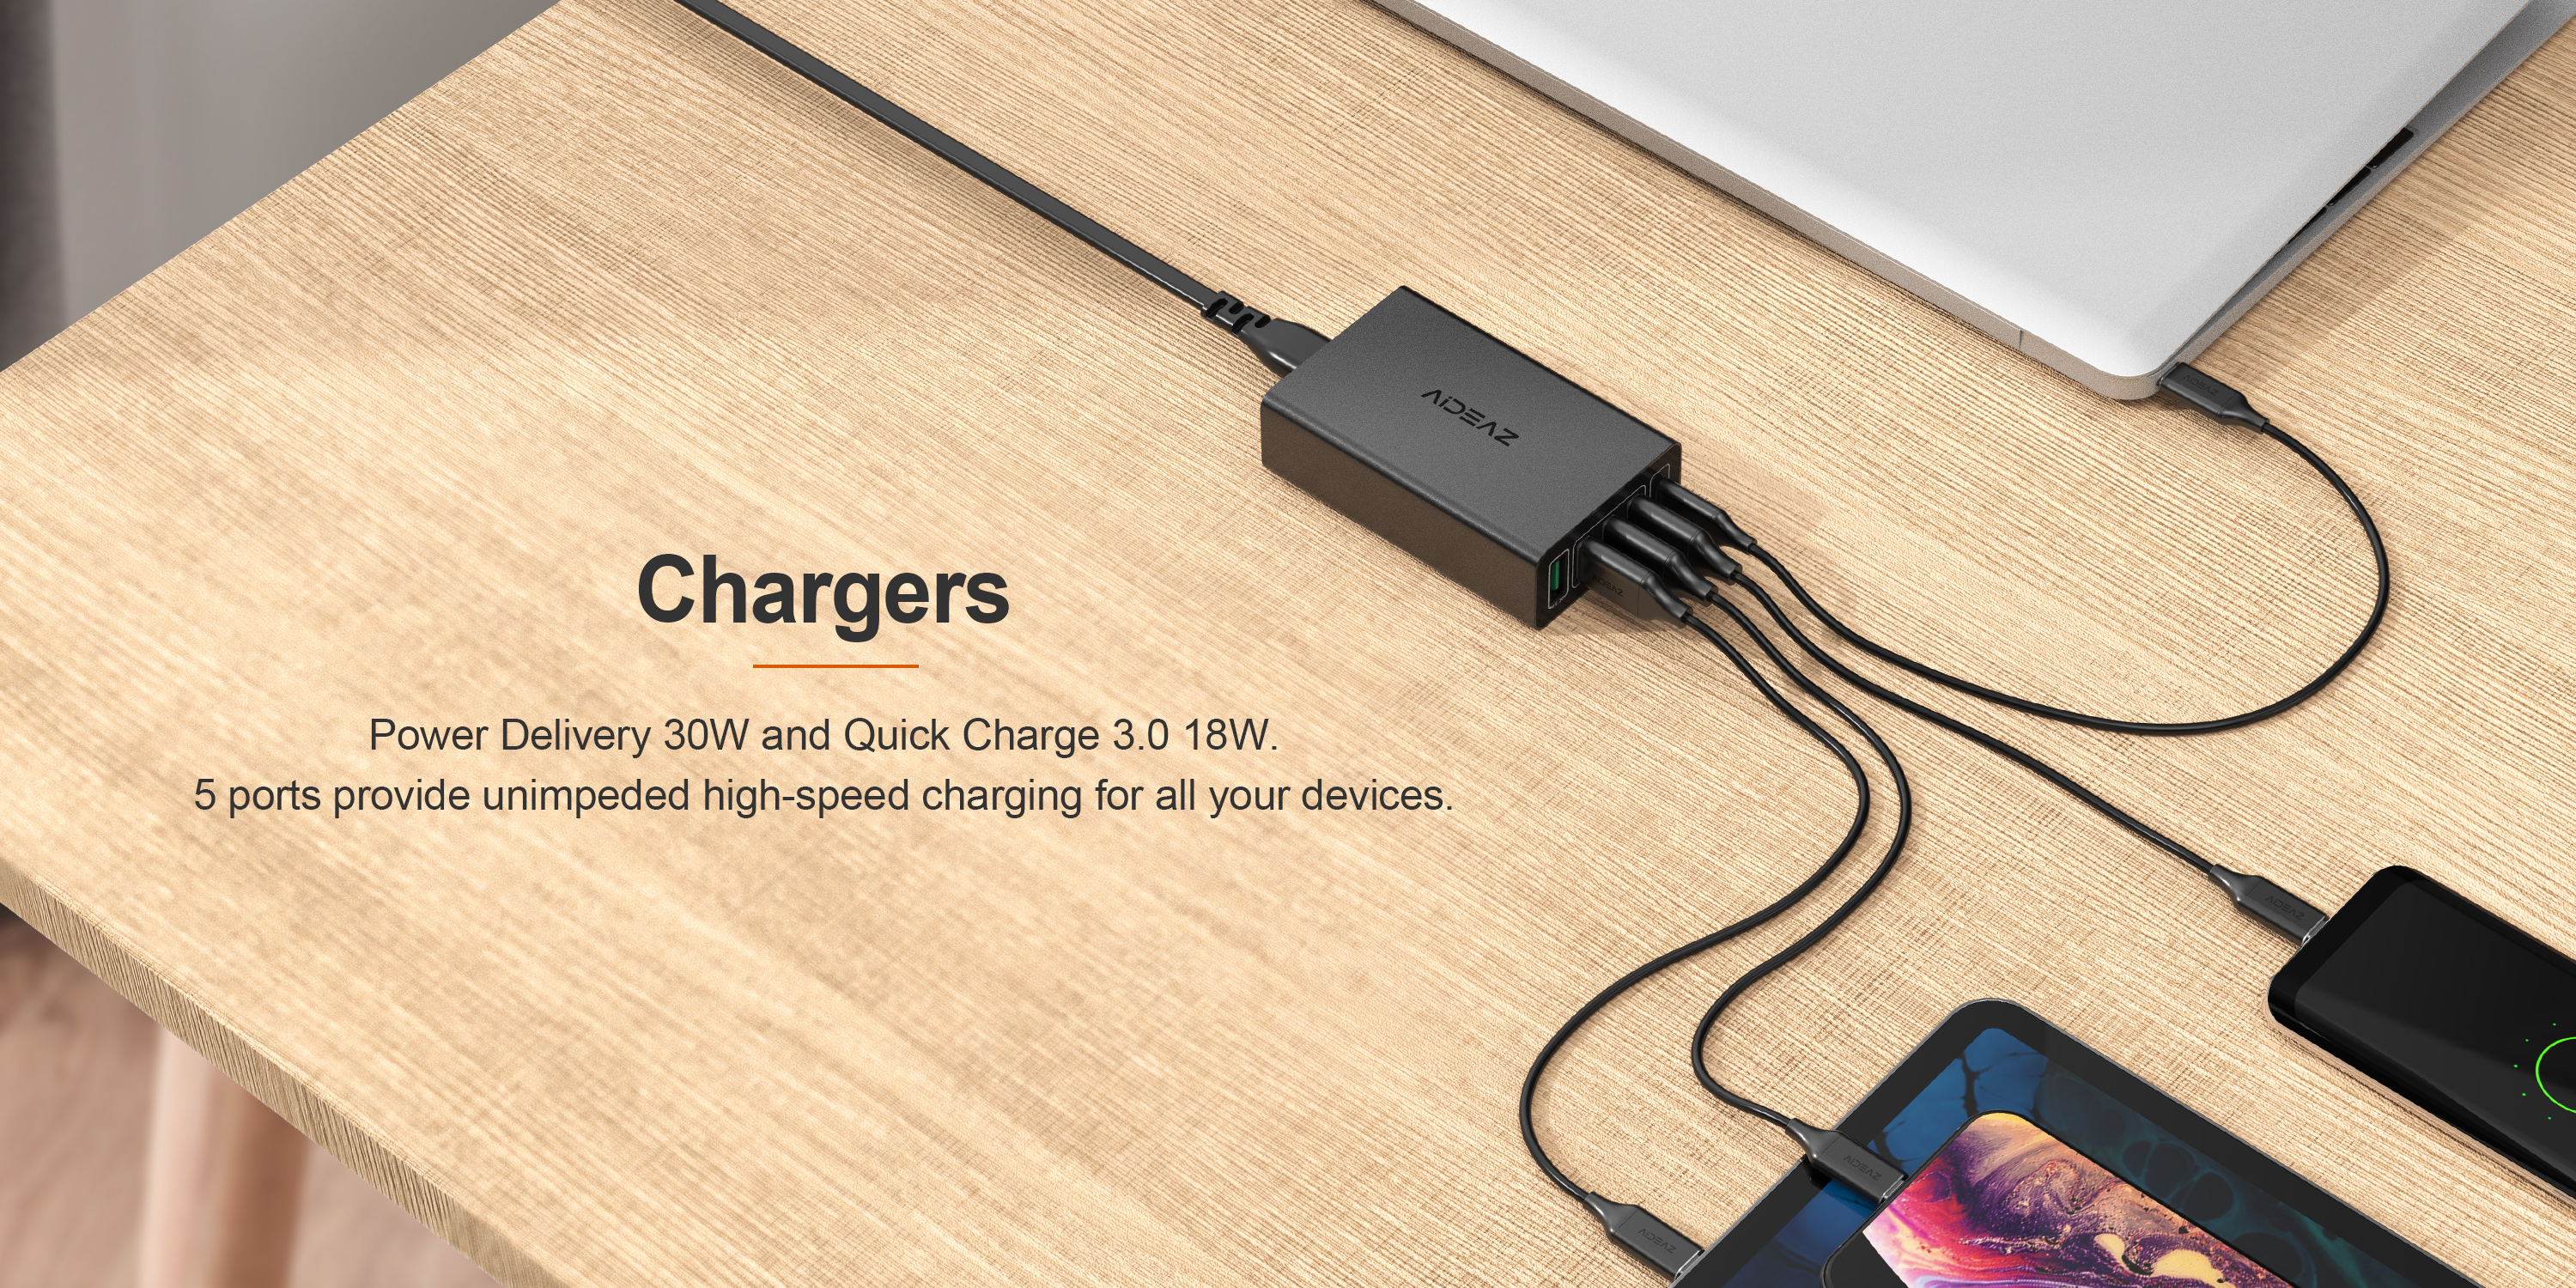 Aideaz Multi USB Charger with Maximum Output of 60W